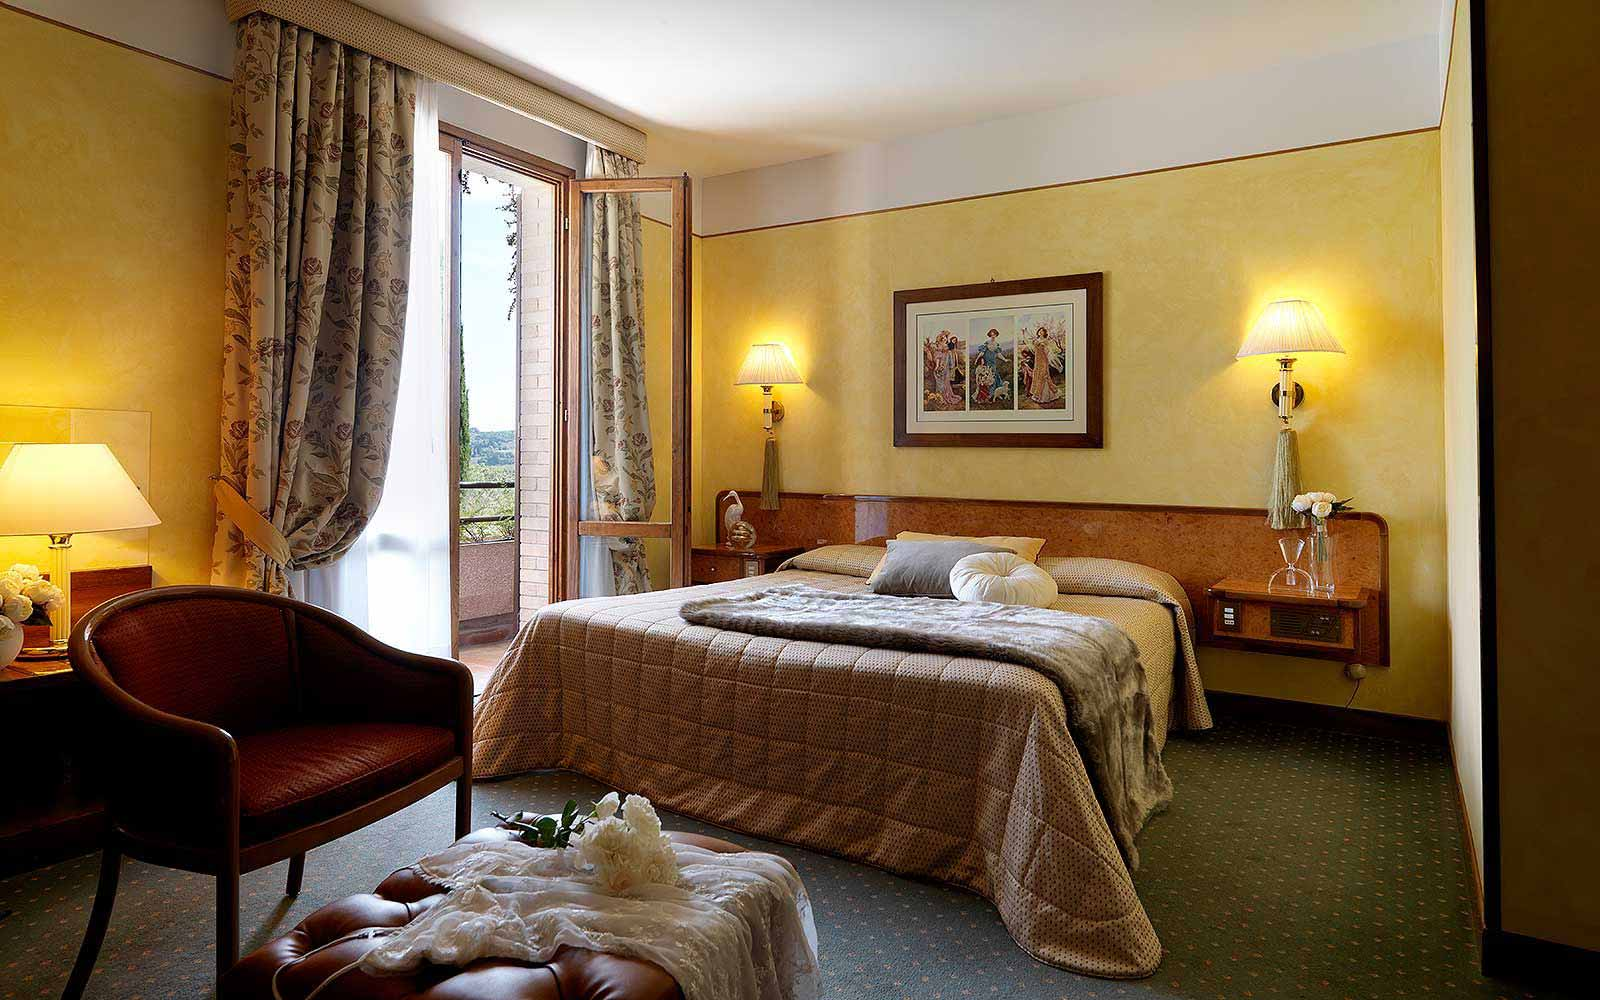 Superior room at Relais Santa Chiara